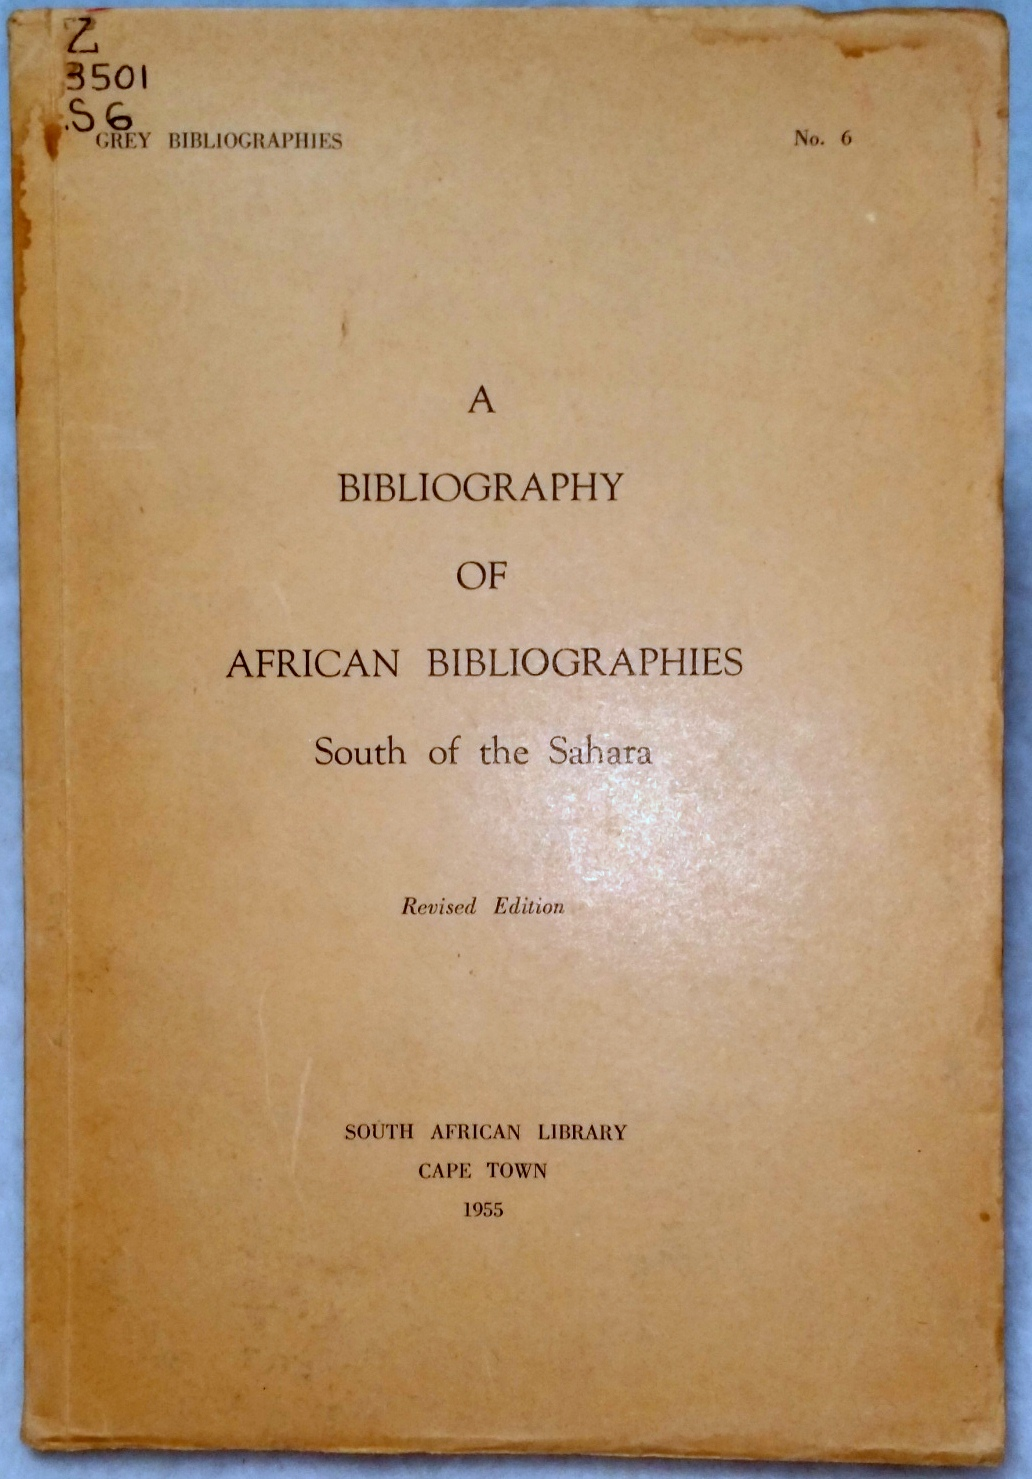 Image for A Bibliography of African Bibliographies Covering Territories South of the Sahara (Grey Bibliographies No. 6)